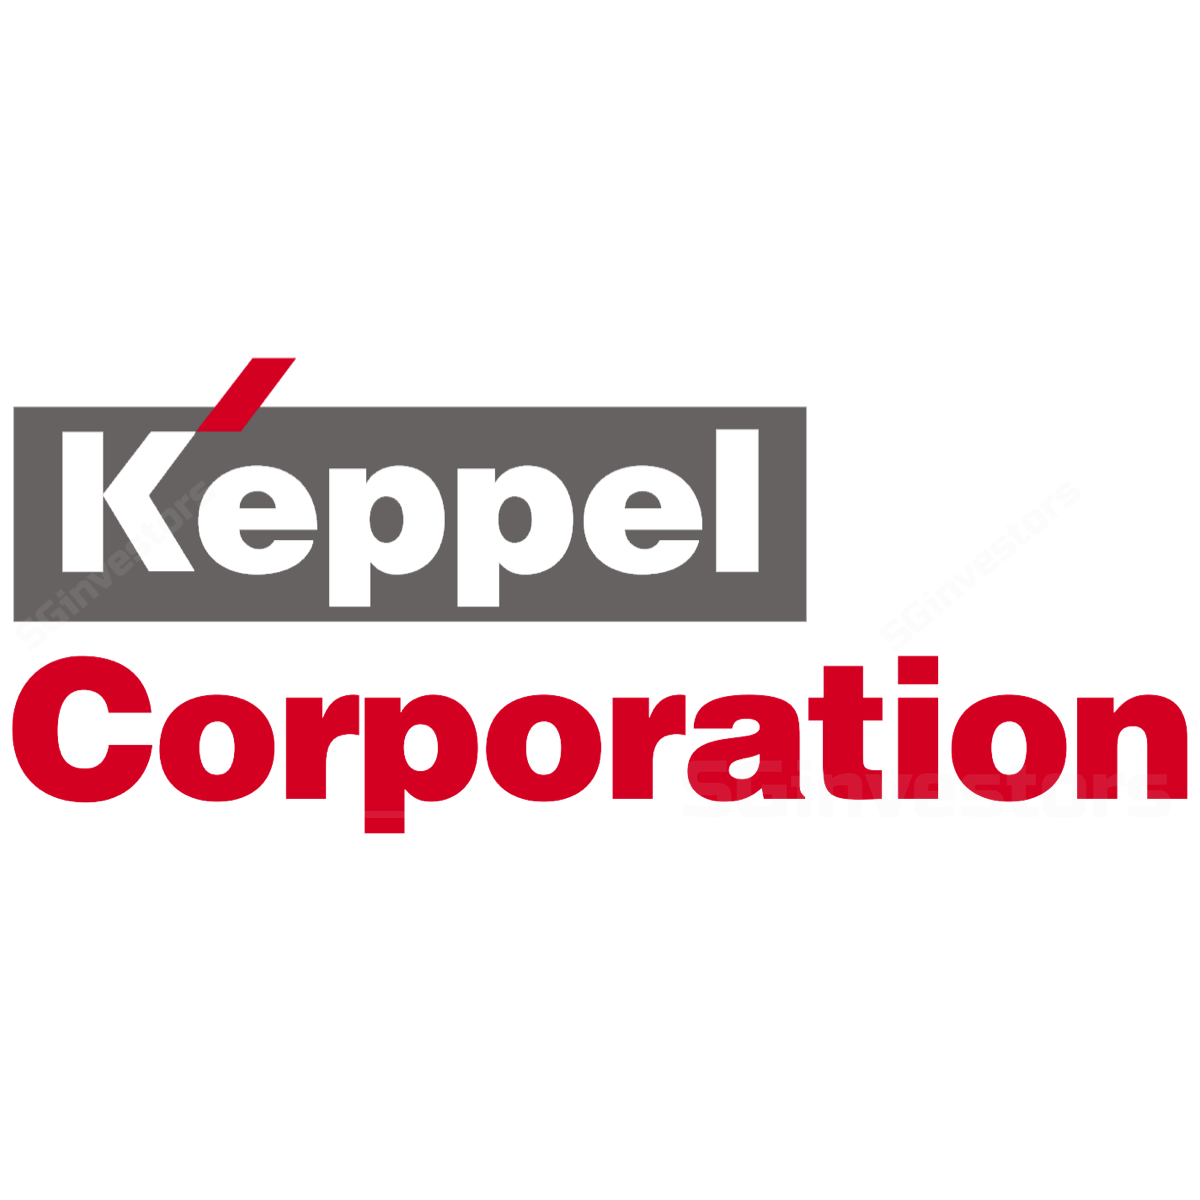 Keppel Corporation - CIMB Research 2018-01-26: Hopeful Of Happy Days Ahead